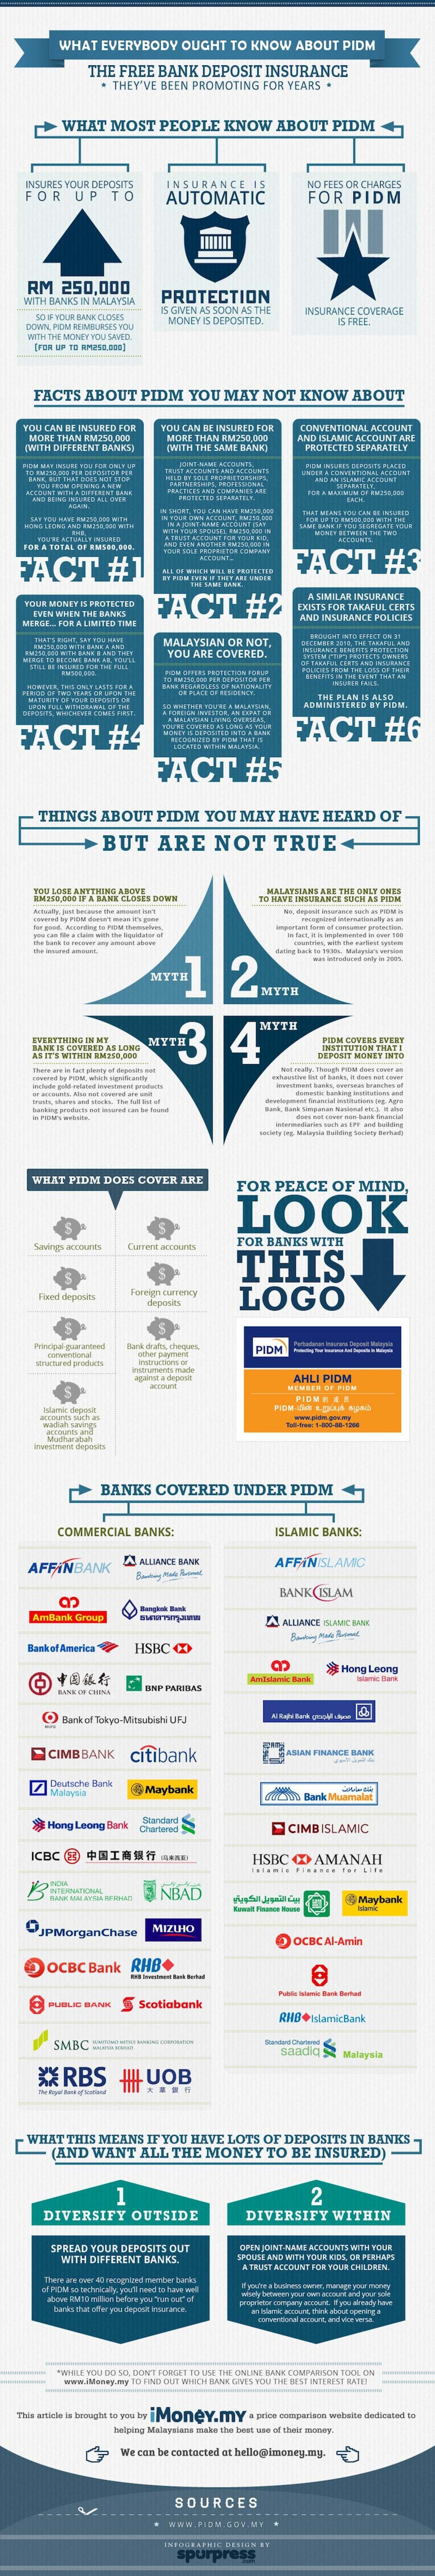 What everybody ought to know about free bank deposit insurance Infographic